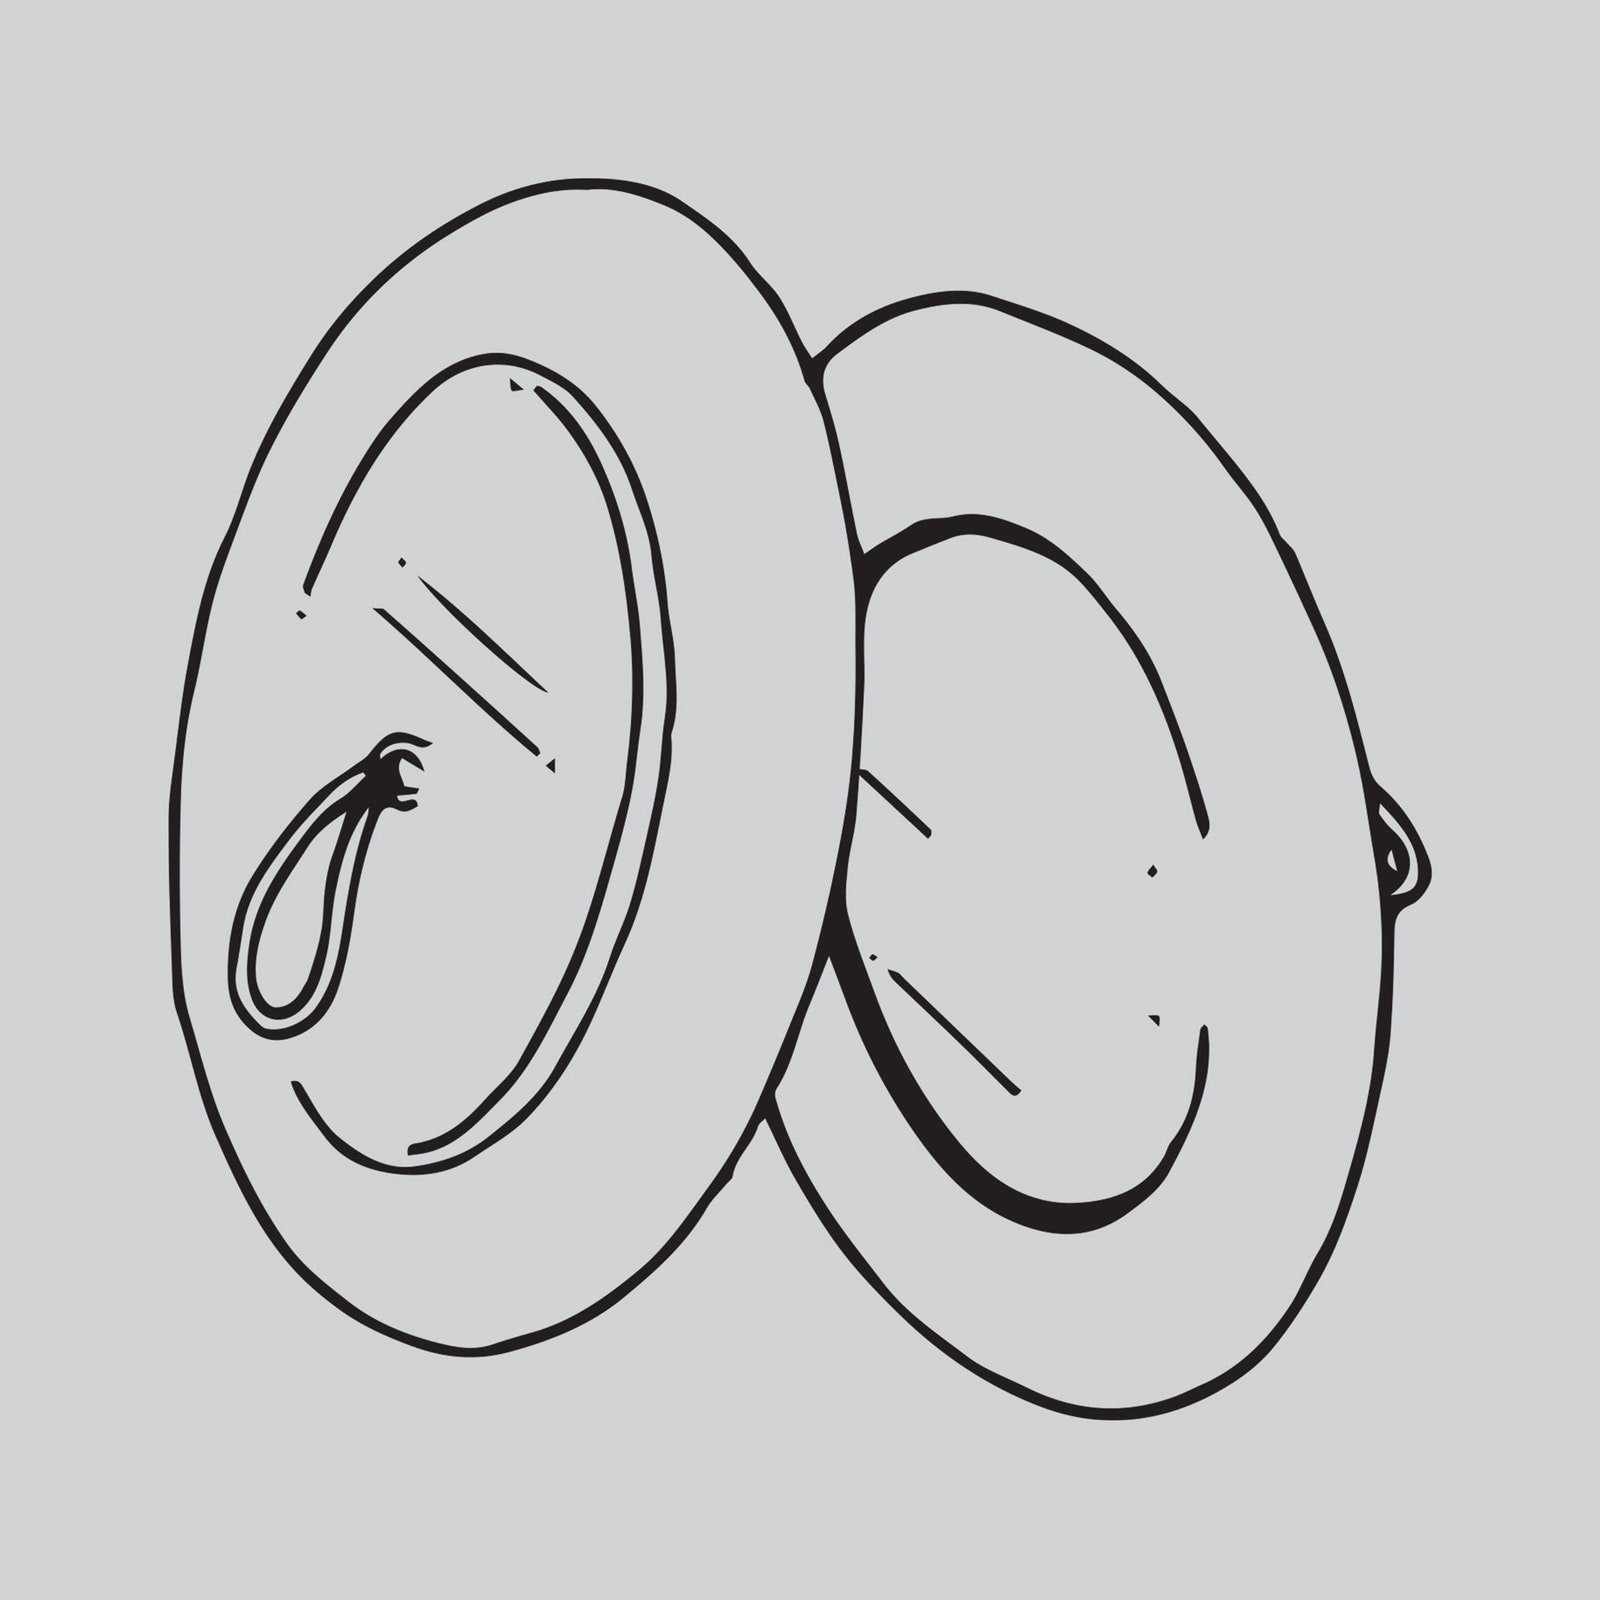 CYMBALS OUTLINE